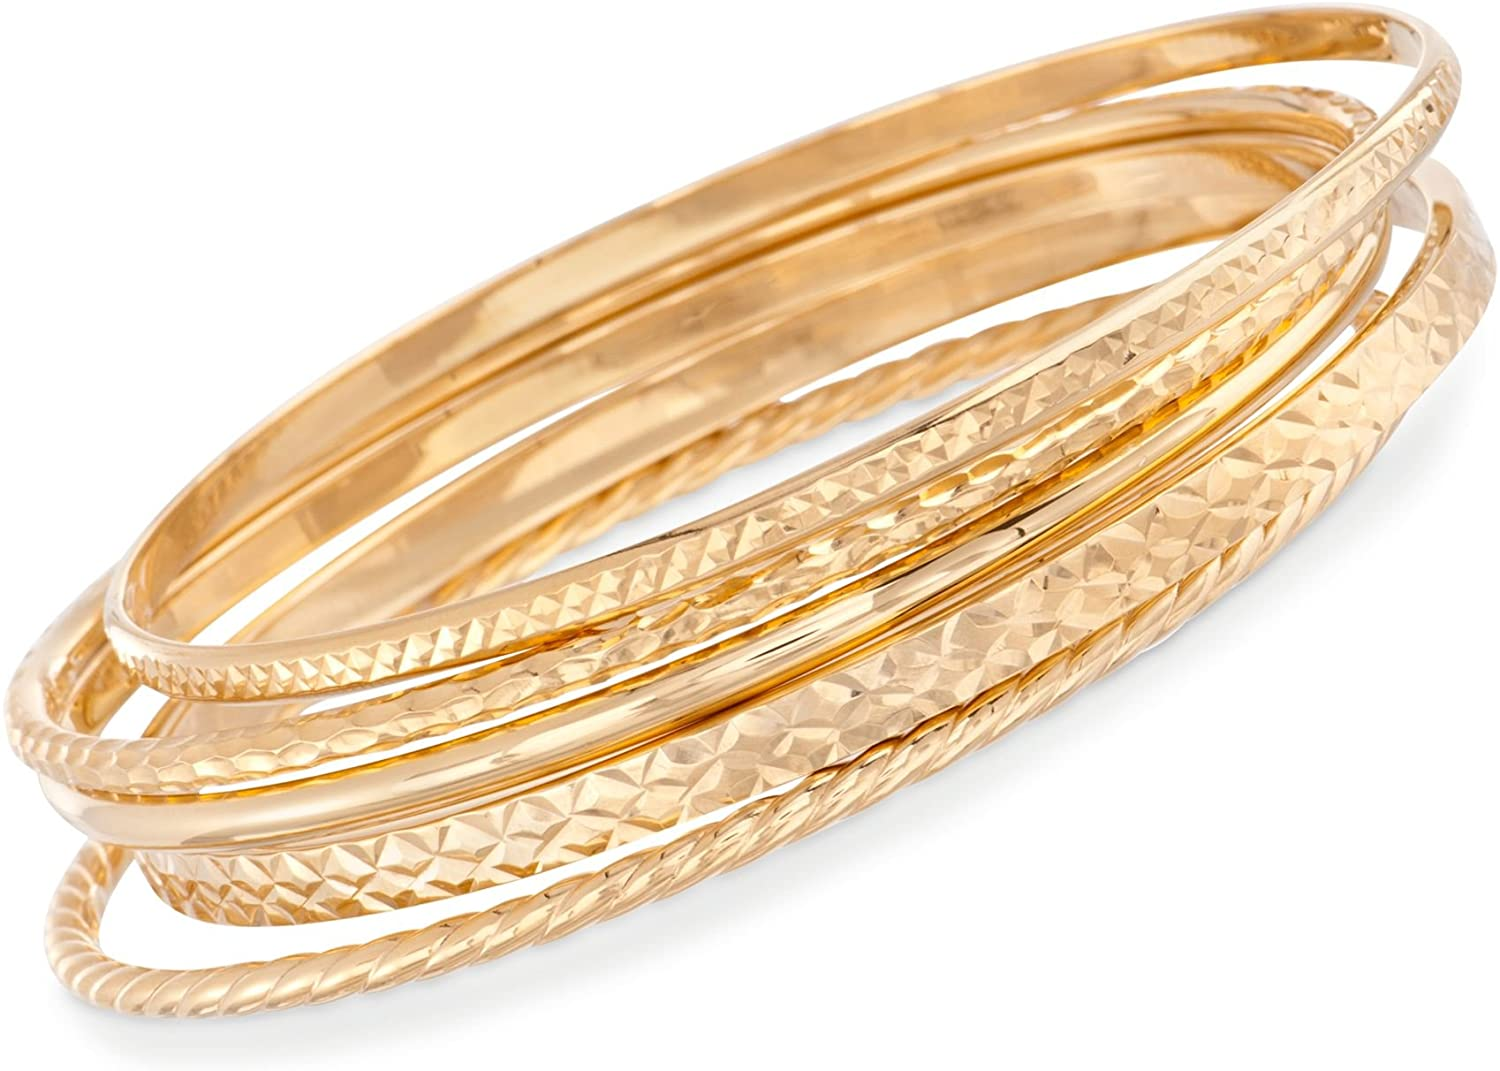 Ross-Simons 18kt Gold Over Sterling Jewelry Set: 5 Textured Bangle Bracelets. 7 inches